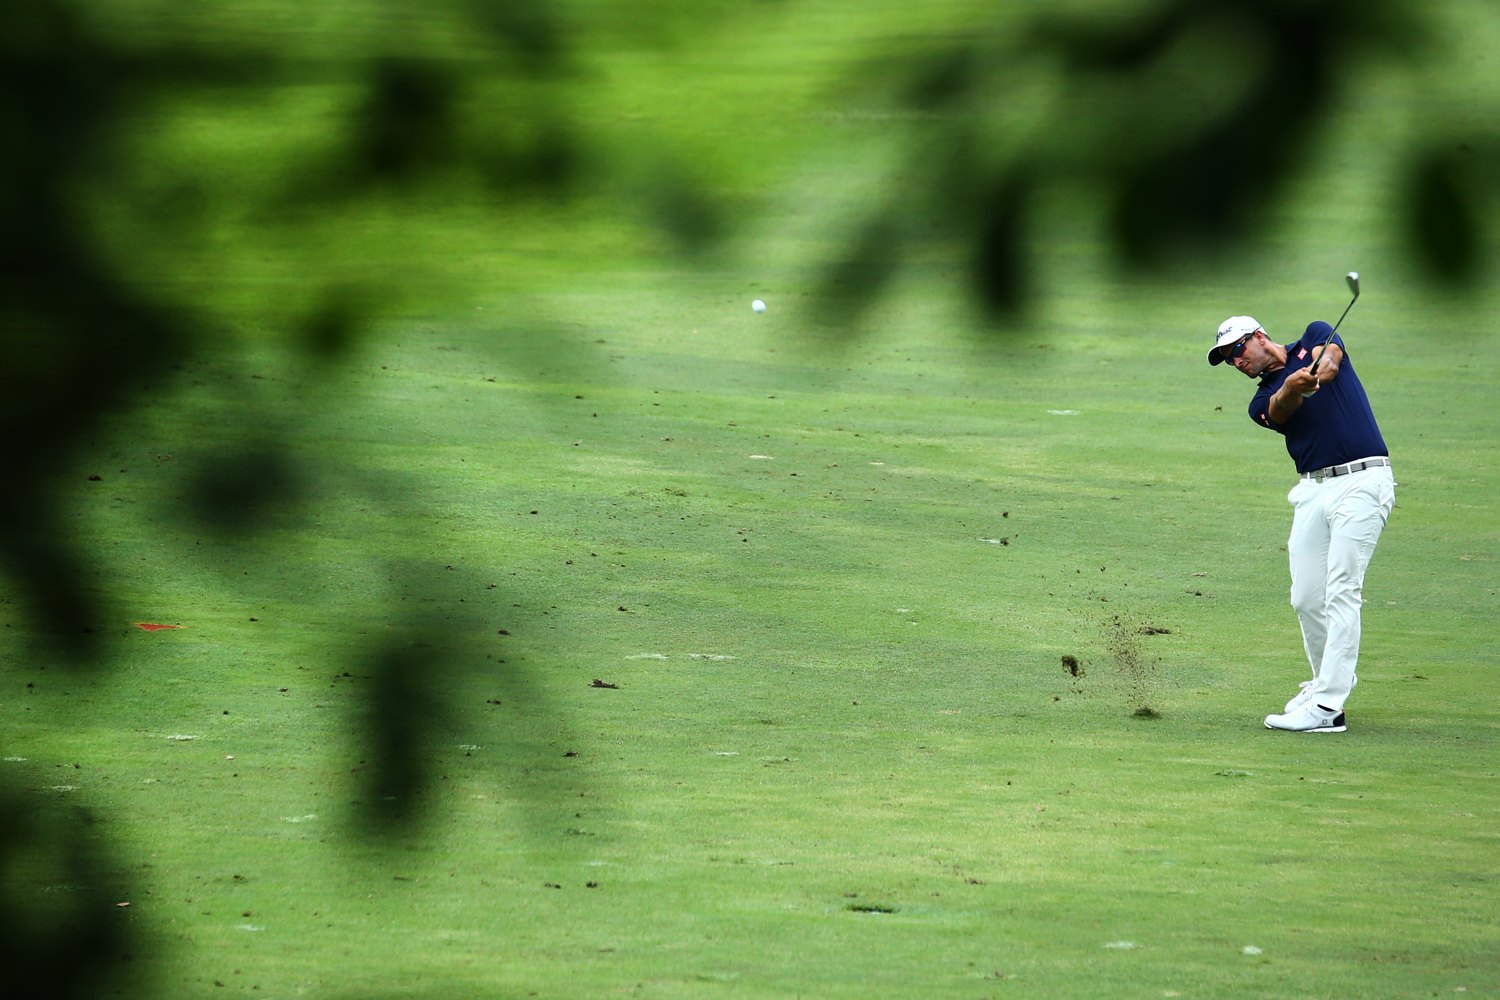 Adam Scott of Australia hits a shot on the seventh green during the second round of the SMBC Singapore Open golf tournament at Sentosa's Serapong golf course in Singapore January 20, 2017.